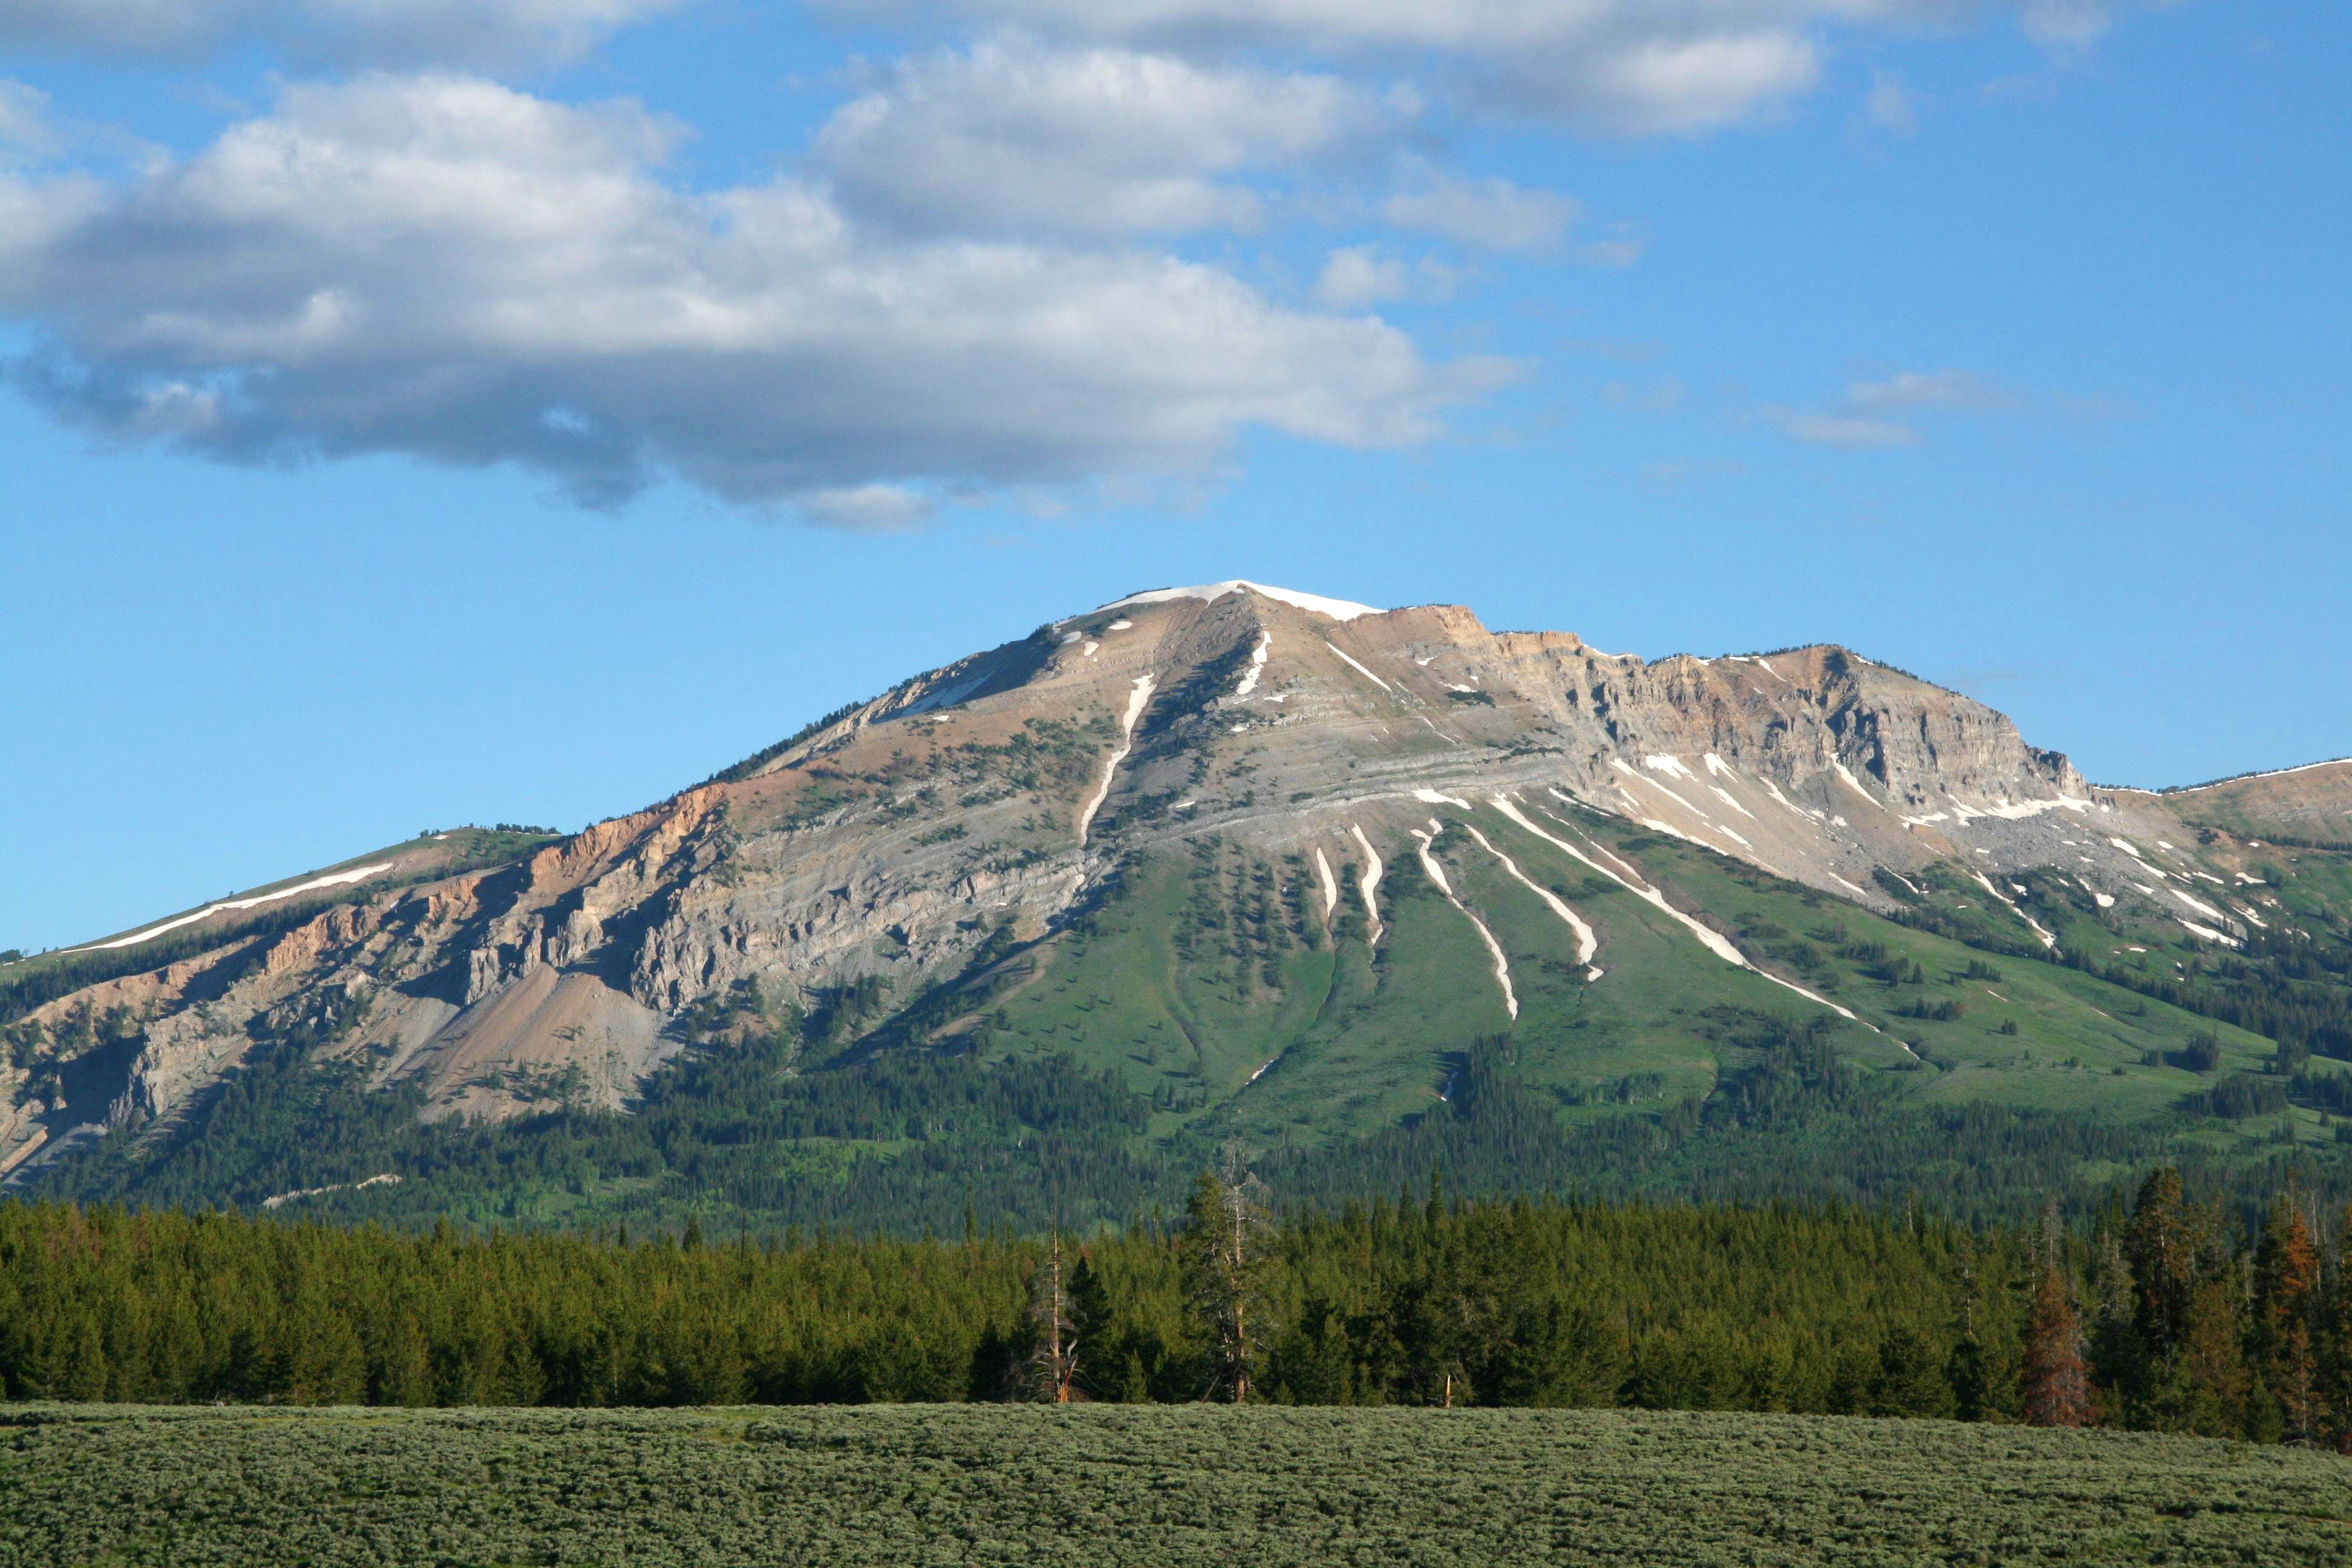 Mount McDougal